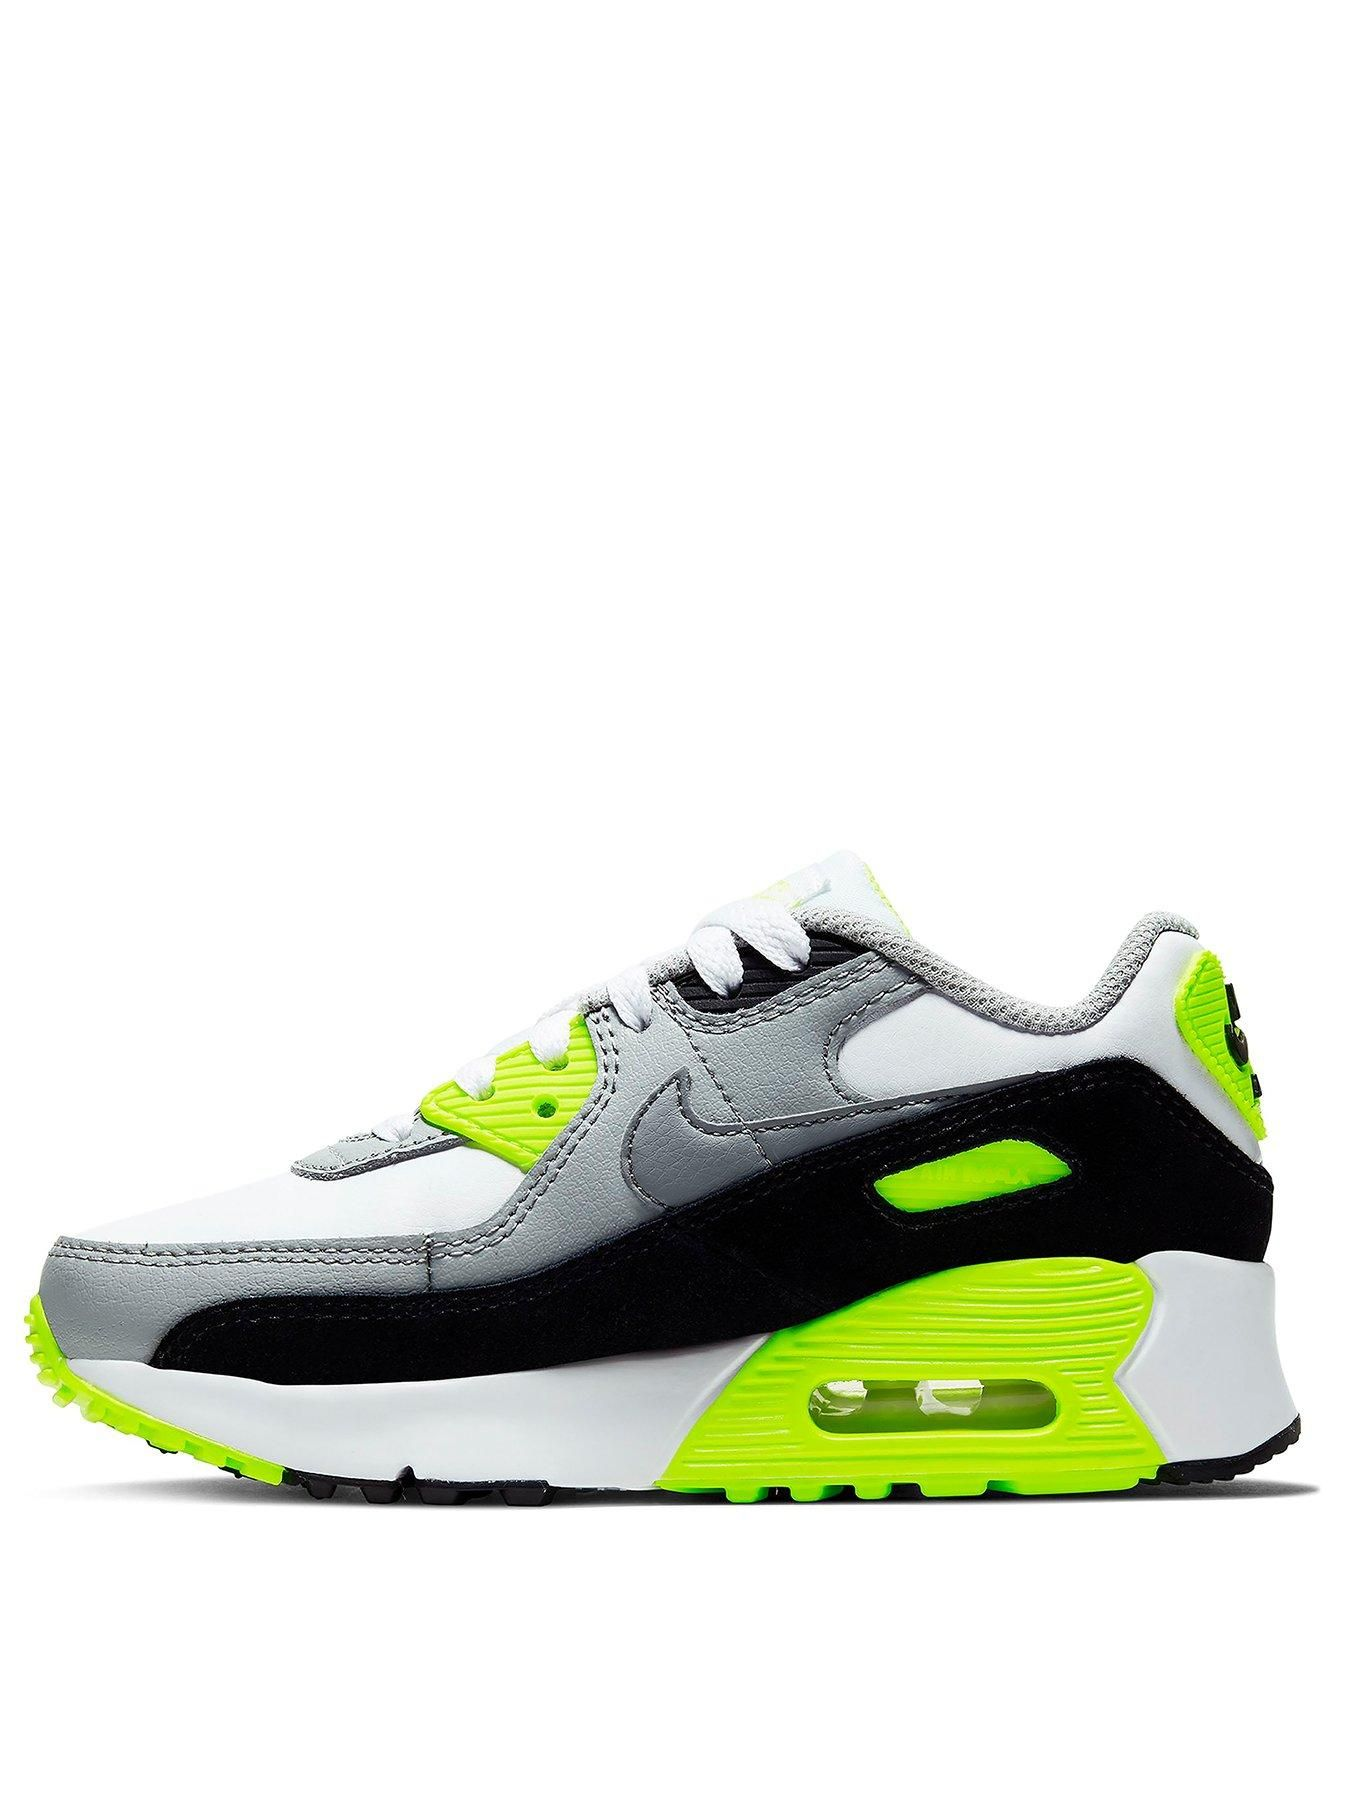 Very Womens Mens And Kids Fashion Furniture Electricals More Air Max 90 Leather Air Max Nike Air